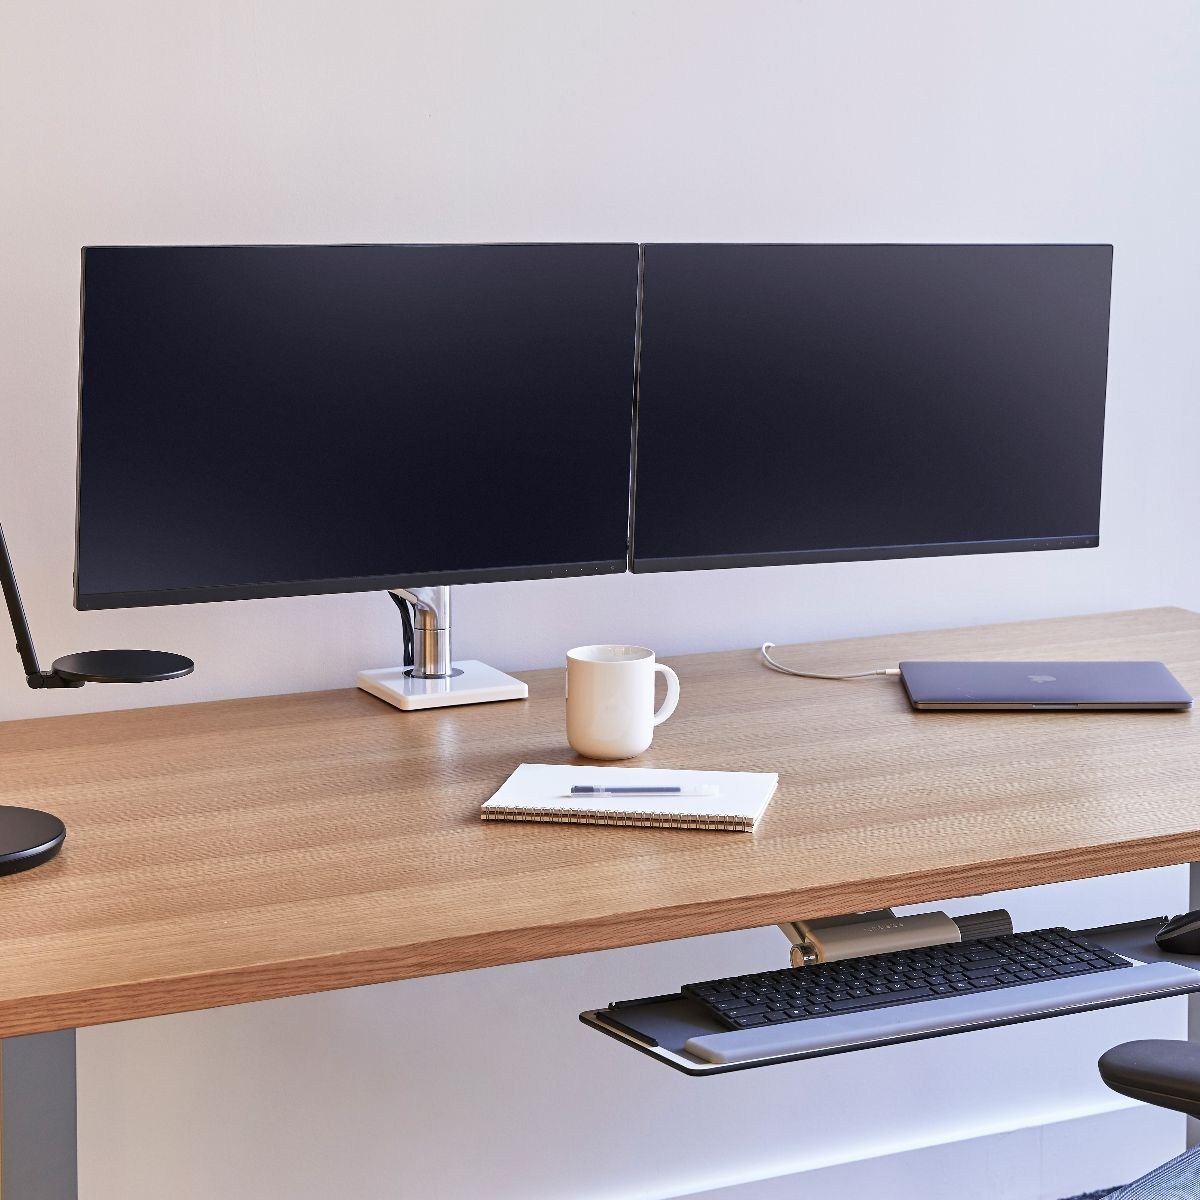 M8 1: Adjustable Dual Monitor Arm   Humanscale